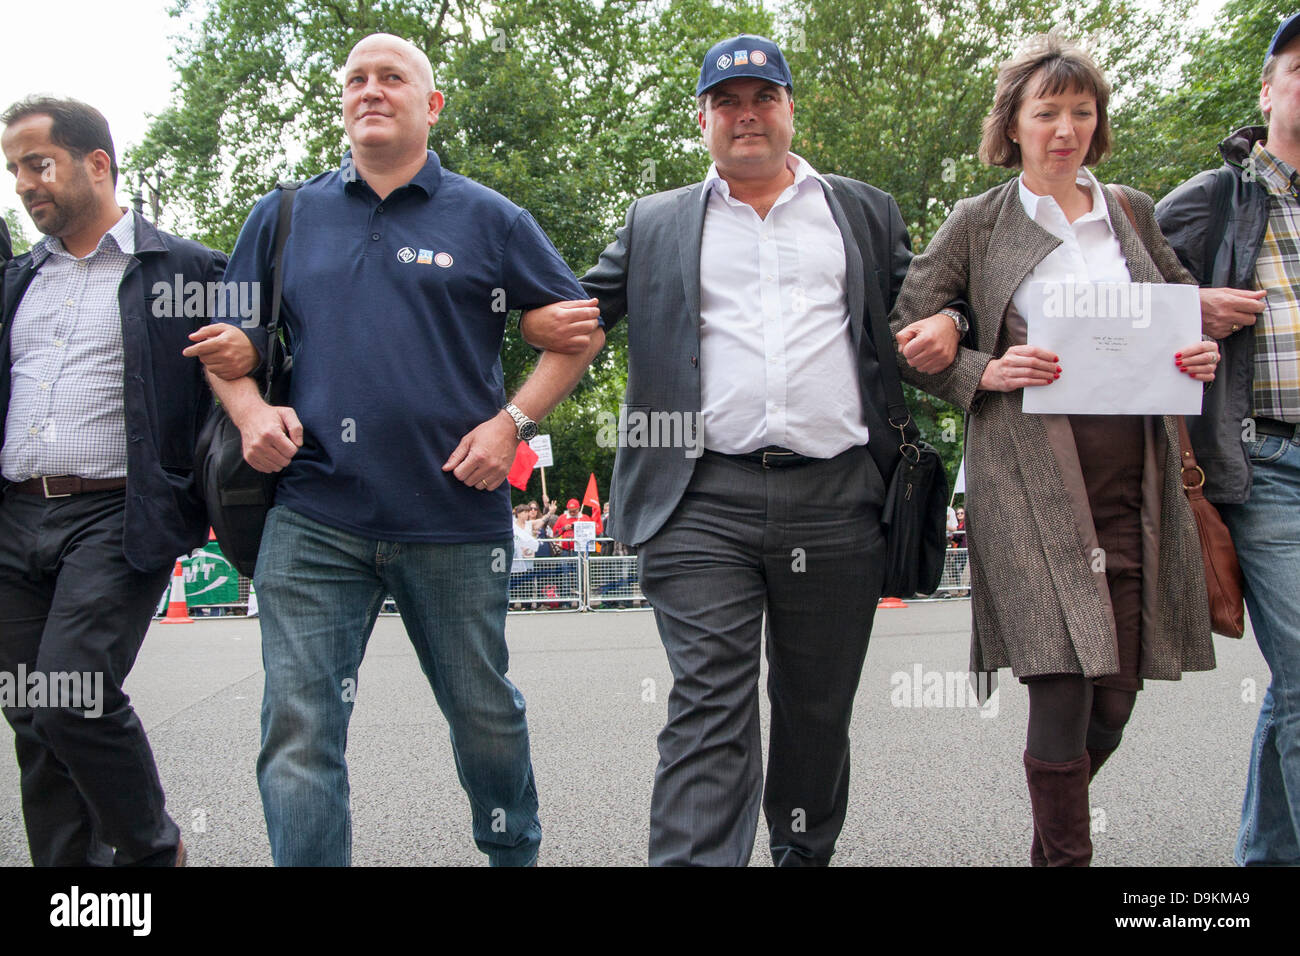 London, UK. 21st June 2013.  Arms linked, a delegation from the protest outside the Turkish embassy crosses the - Stock Image